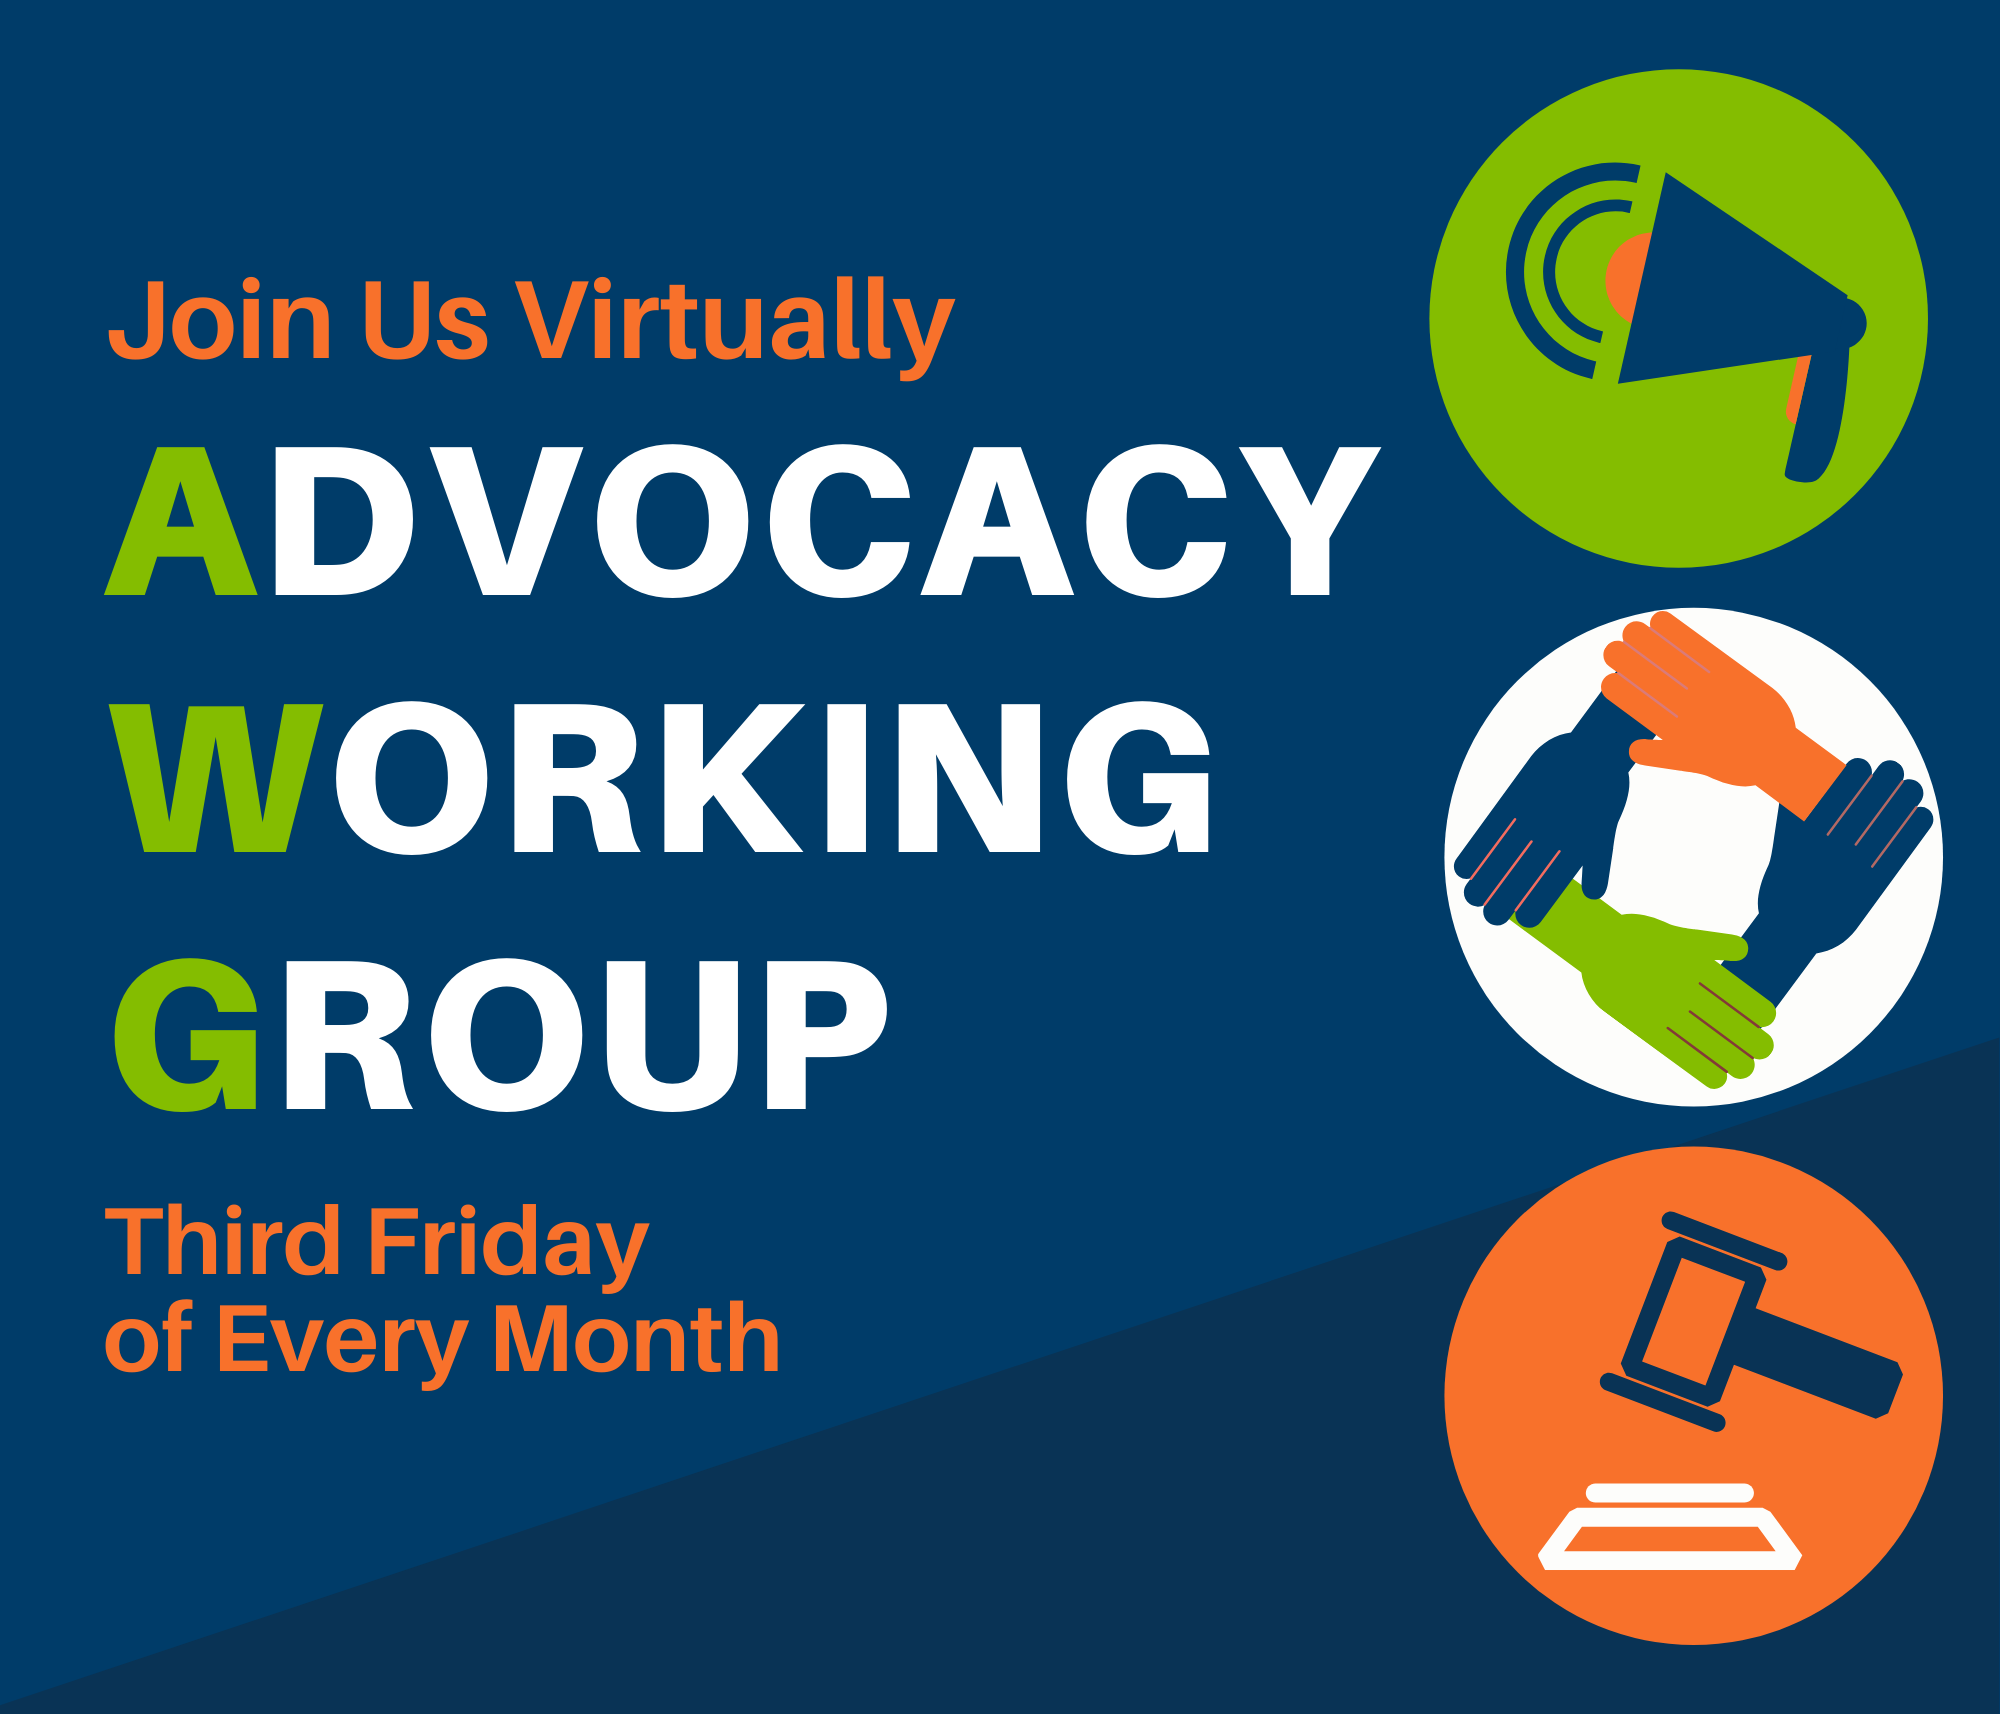 Virtual Advocacy Working Group